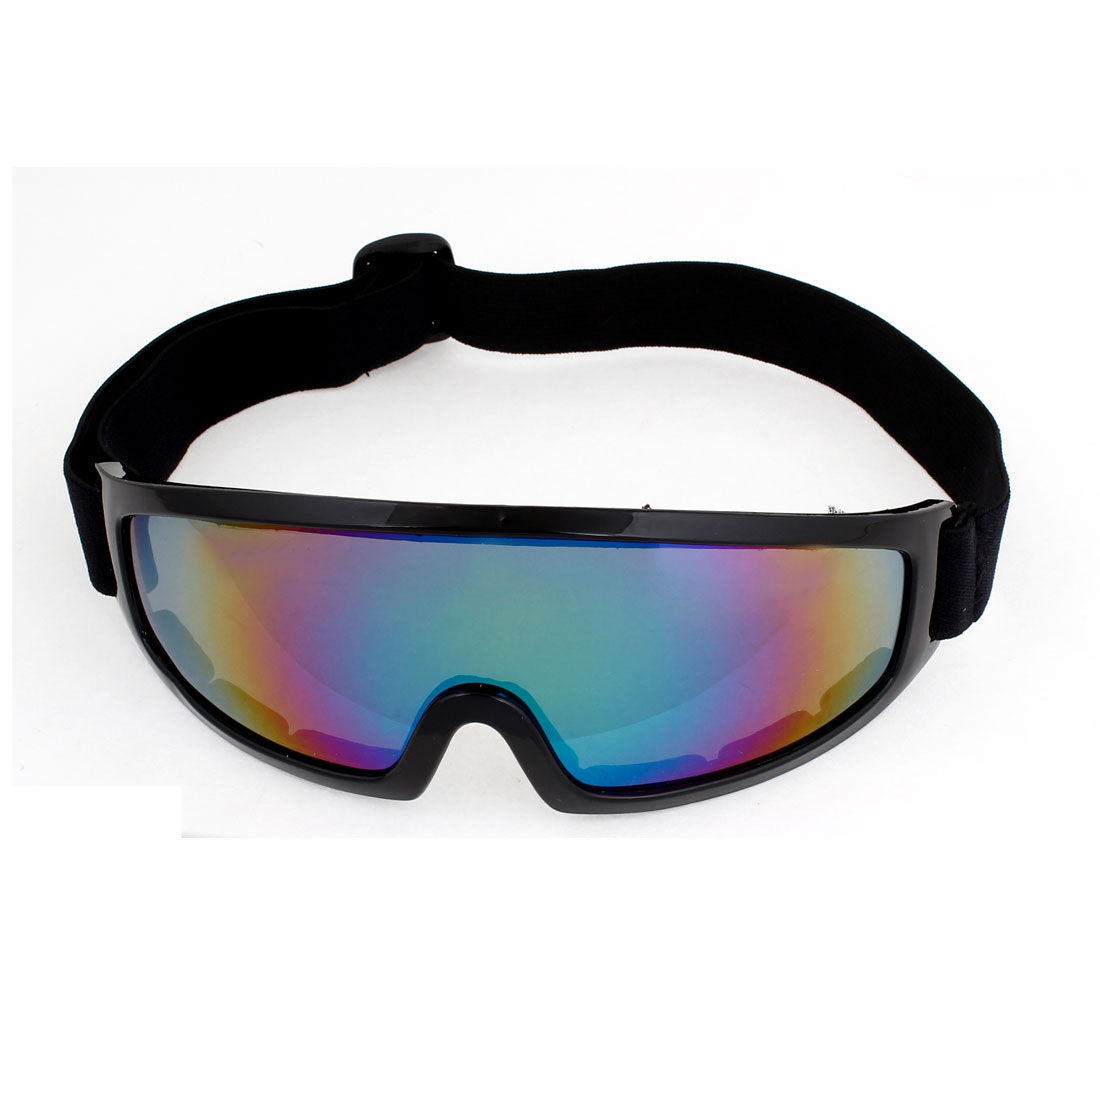 Unisex Outdoor Sports Colorful Lens Black Rim Ski Goggles Eyeglasses Eyewear by Unique-Bargains